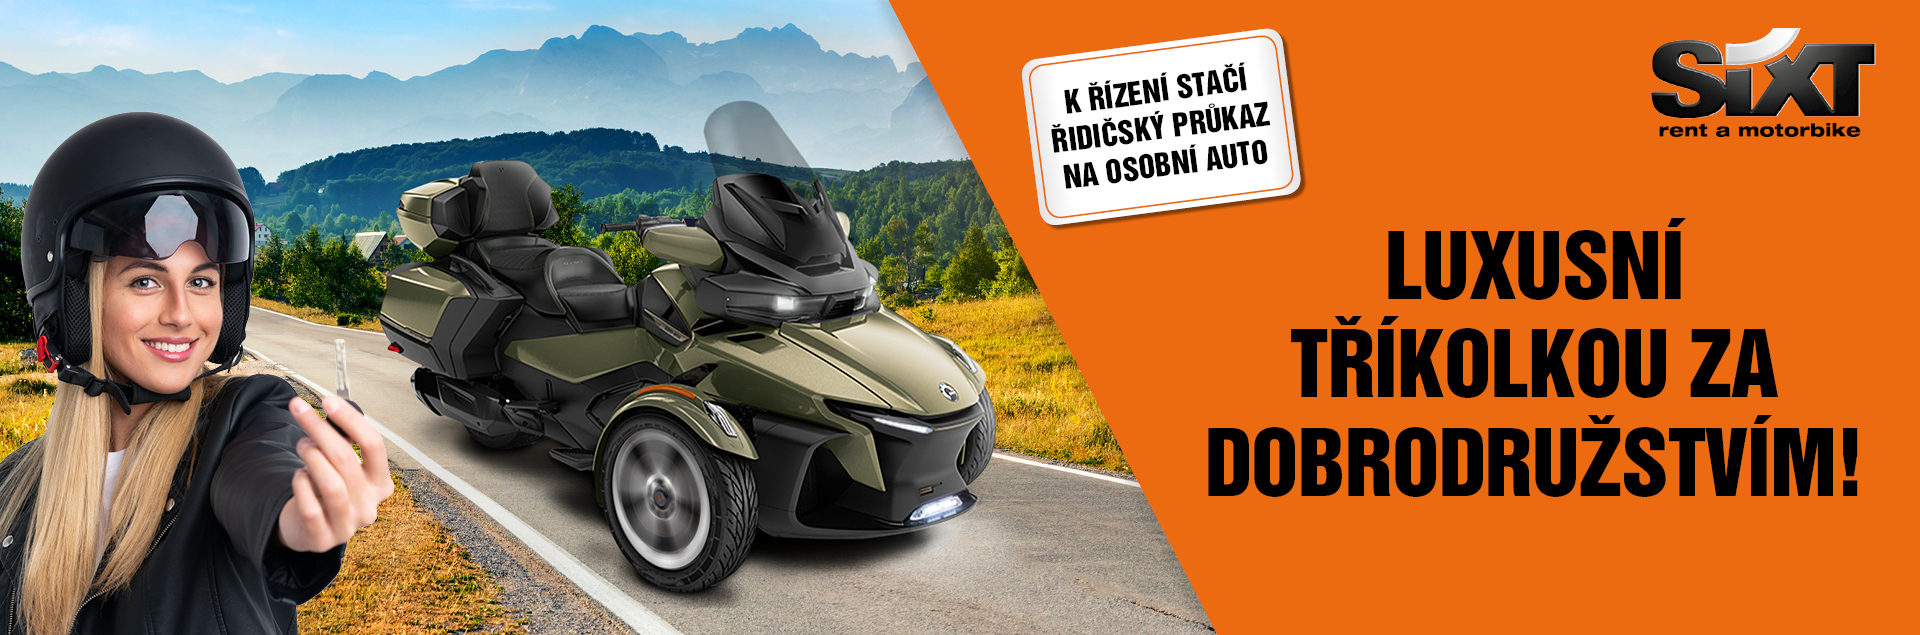 SIXT_can-am_spyder_banner_1920x635_1-2021_Homepage